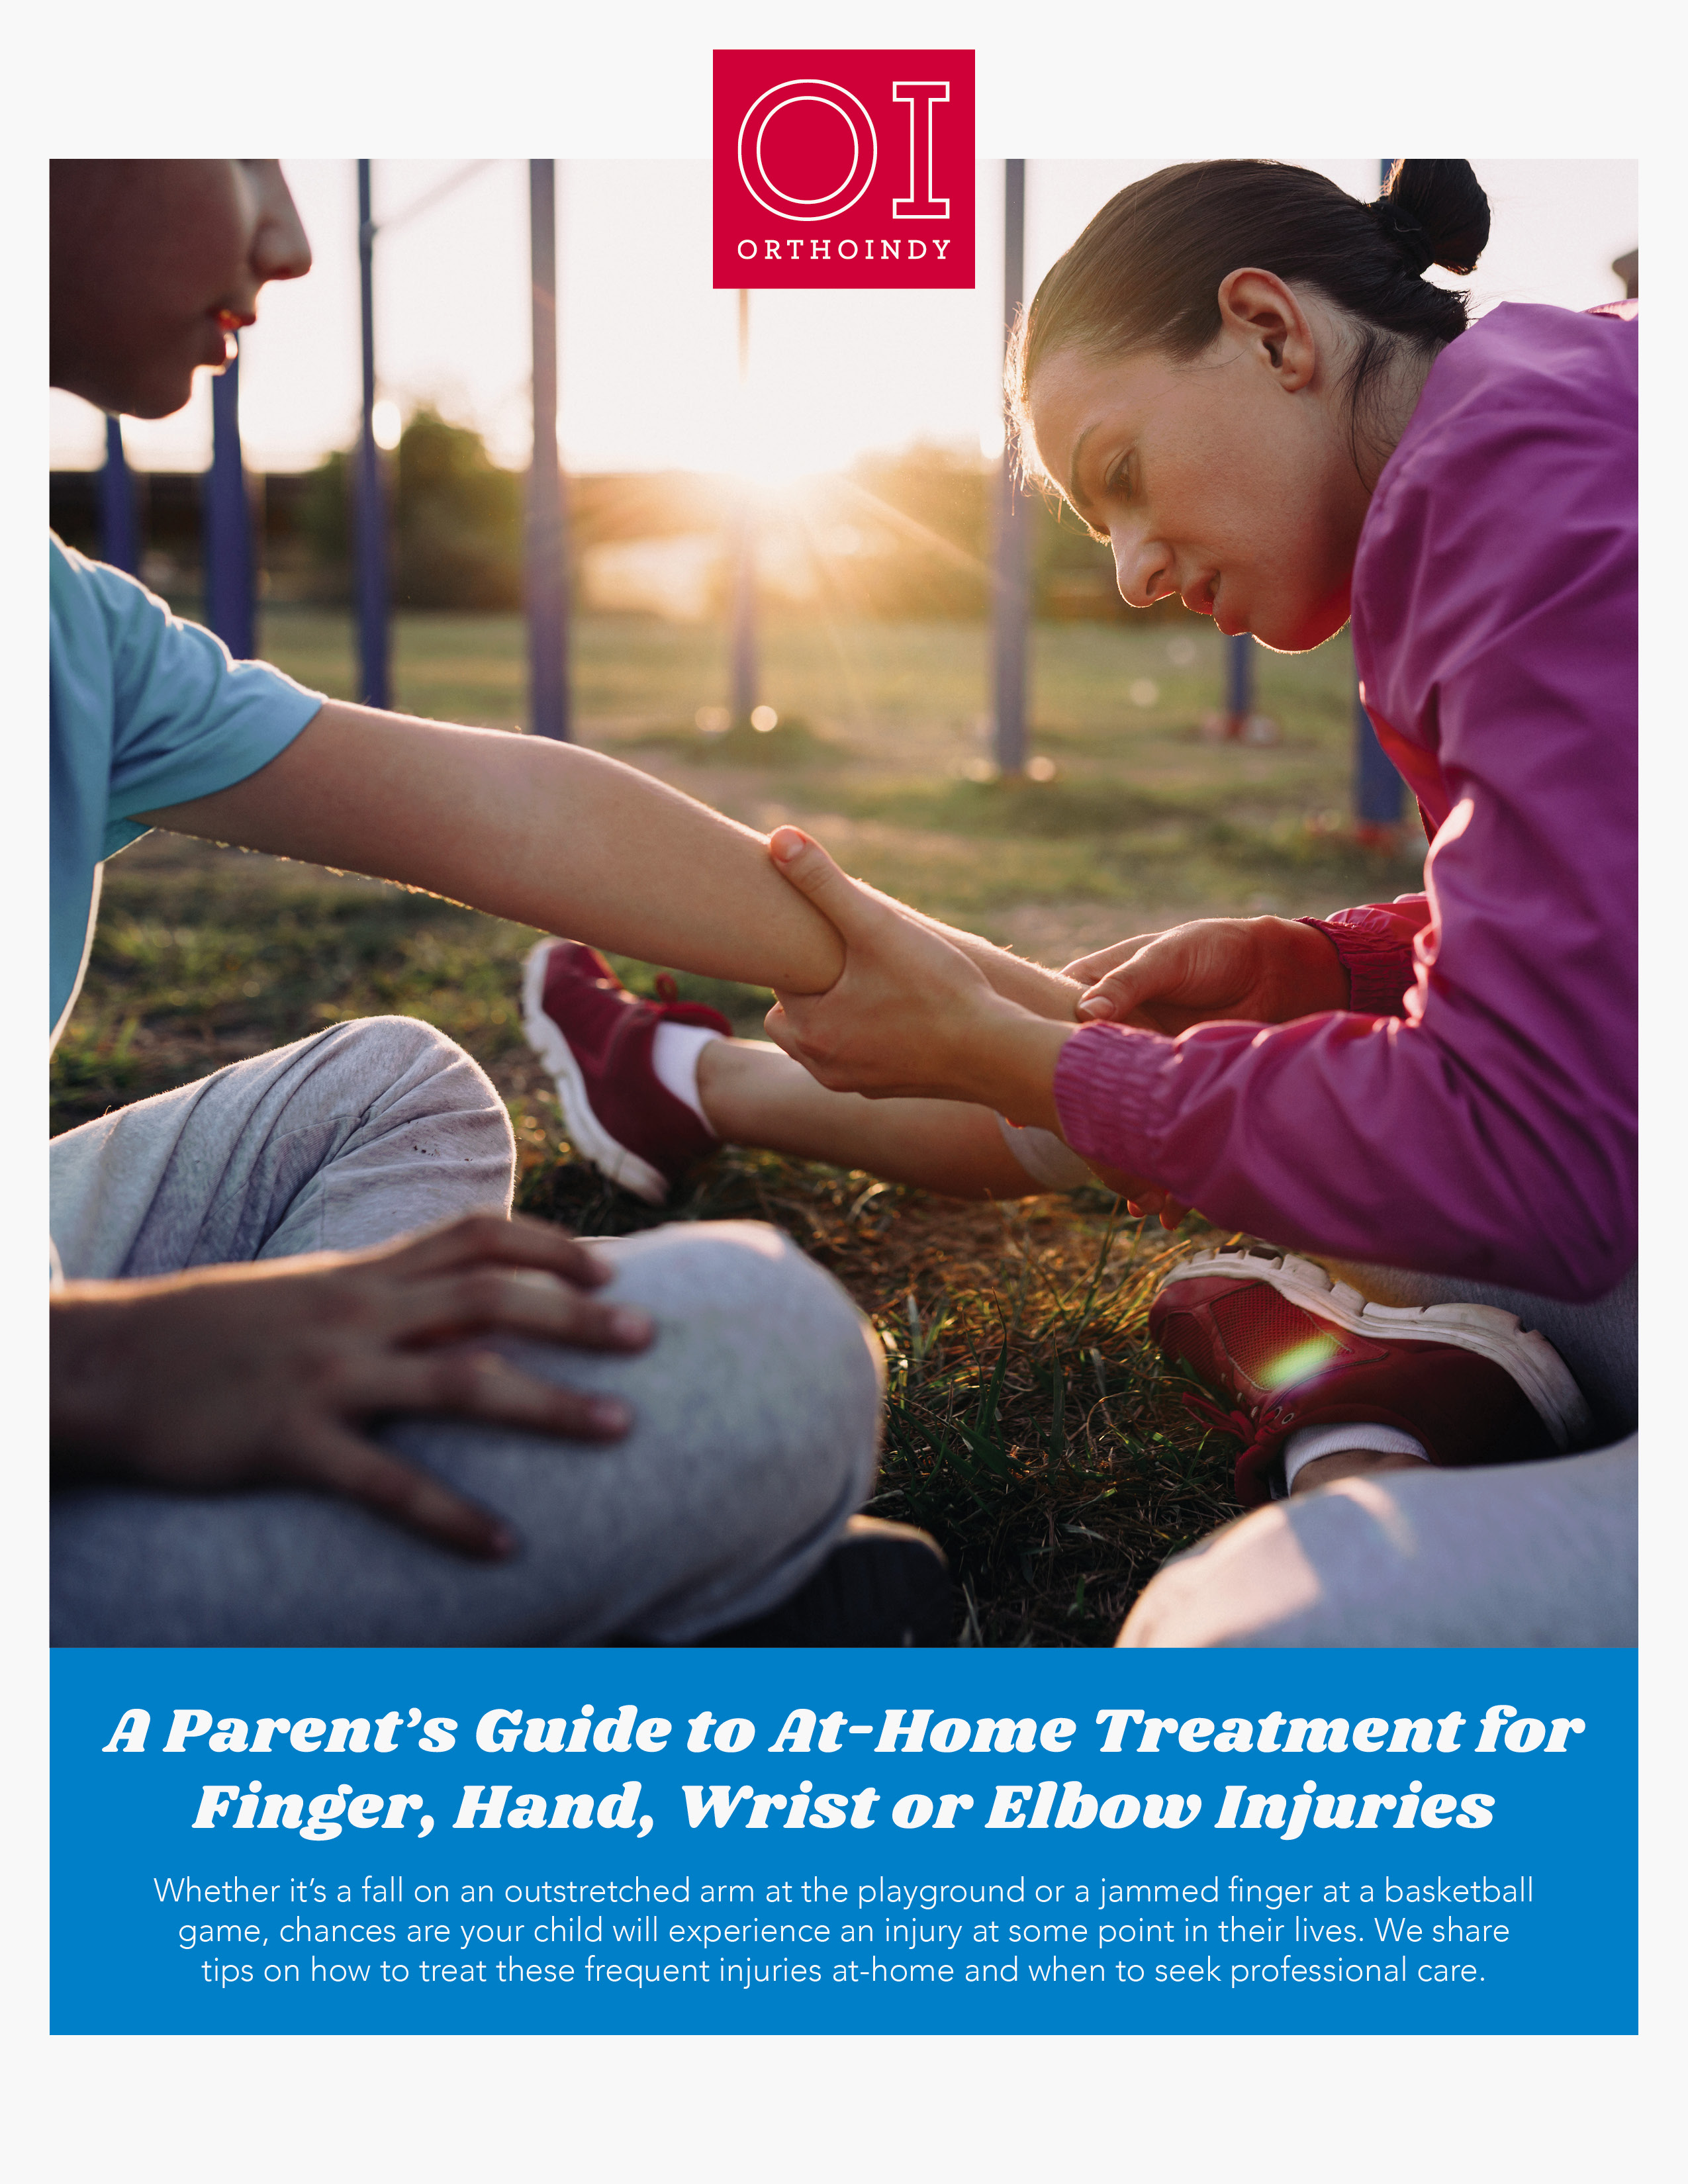 56fcd1a0db12 Learn how to treat your child's finger, hand, wrist or elbow injury  at-home. Parents Guide ...